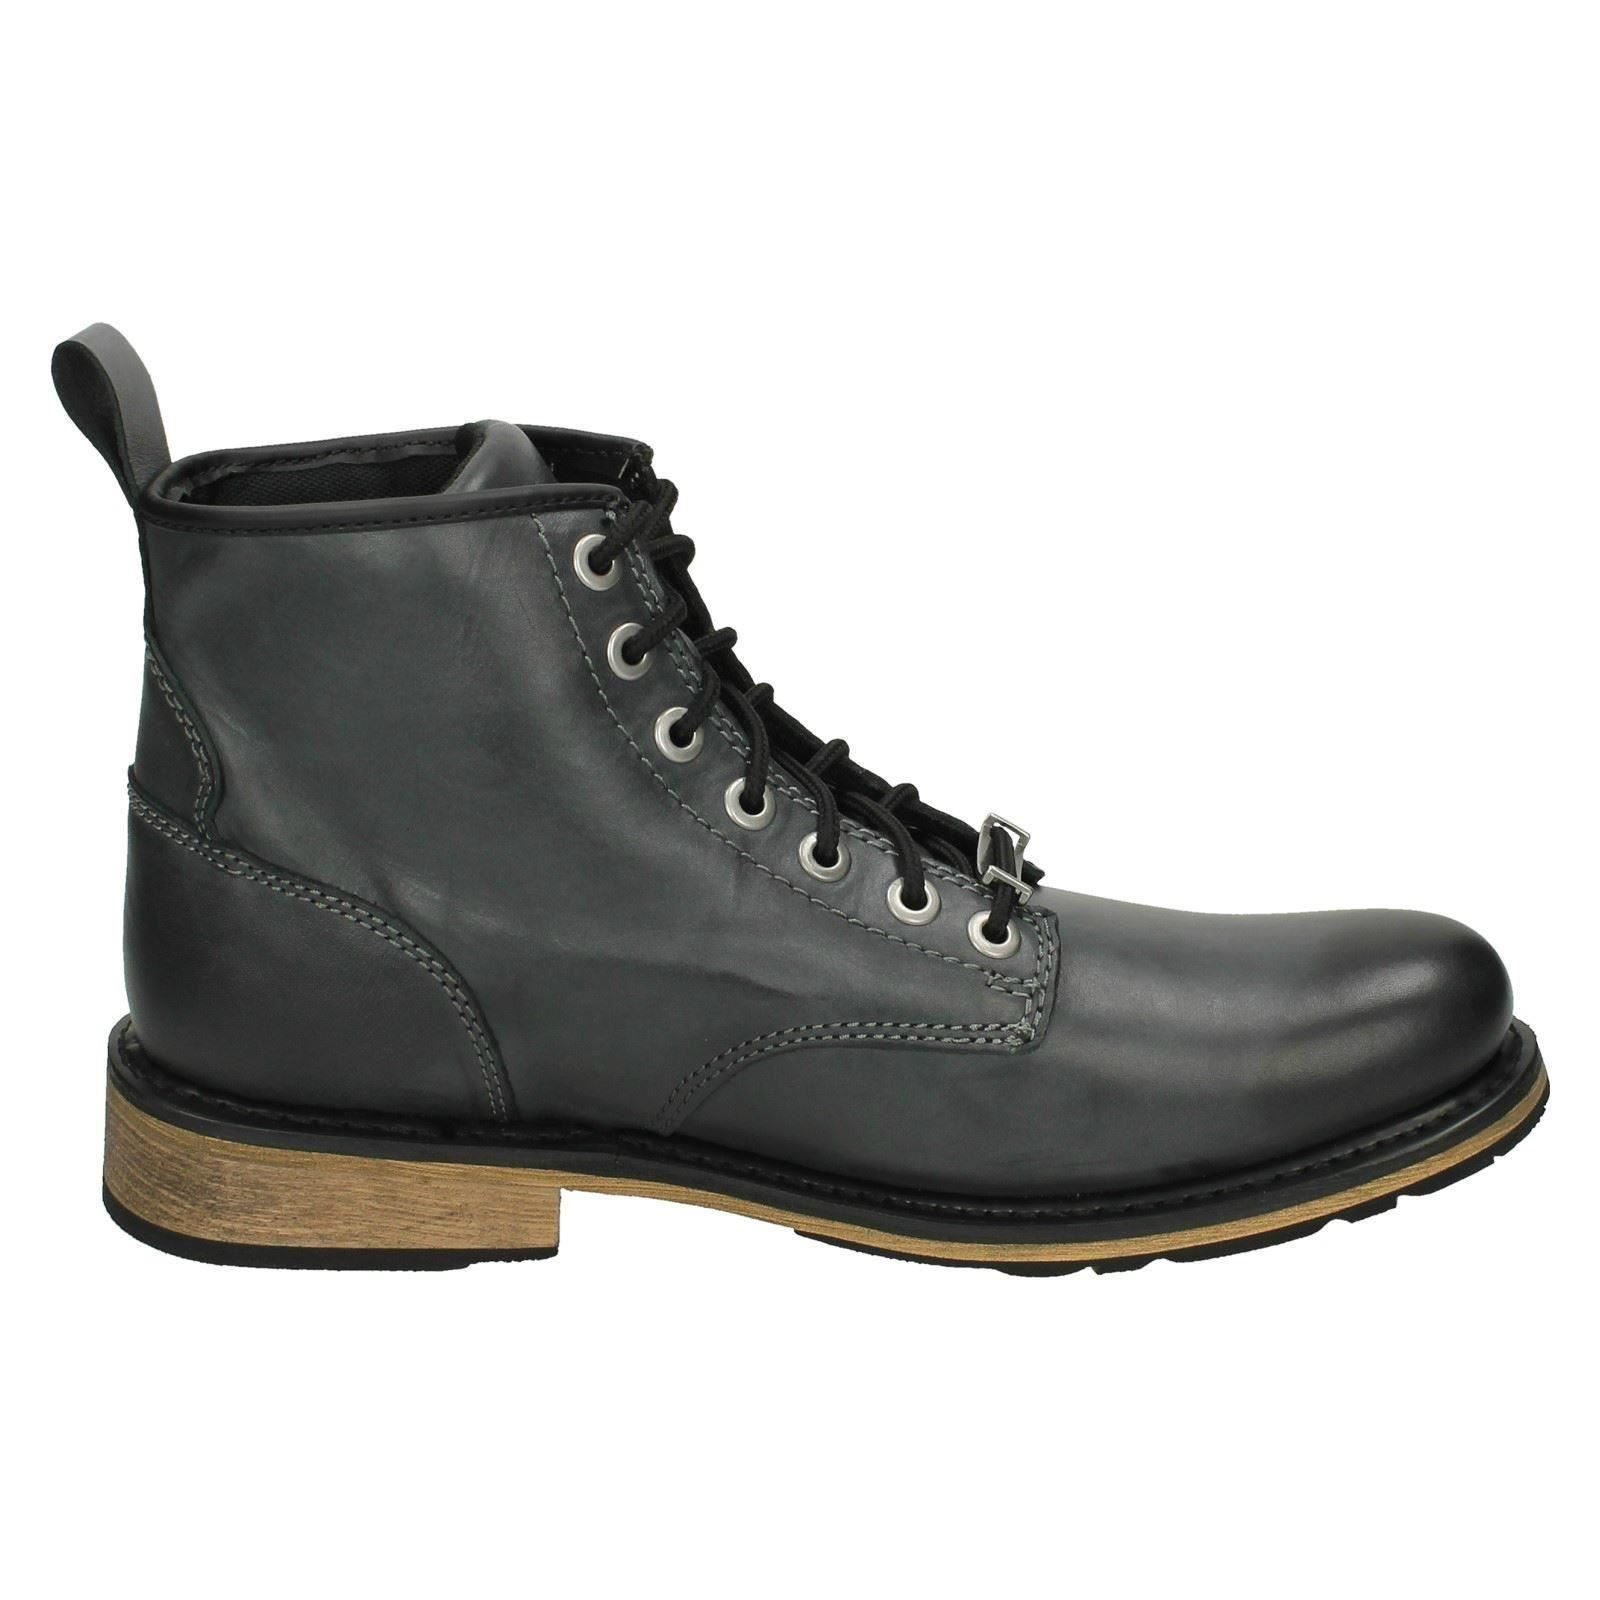 mens harley davidson ankle boots style joshua